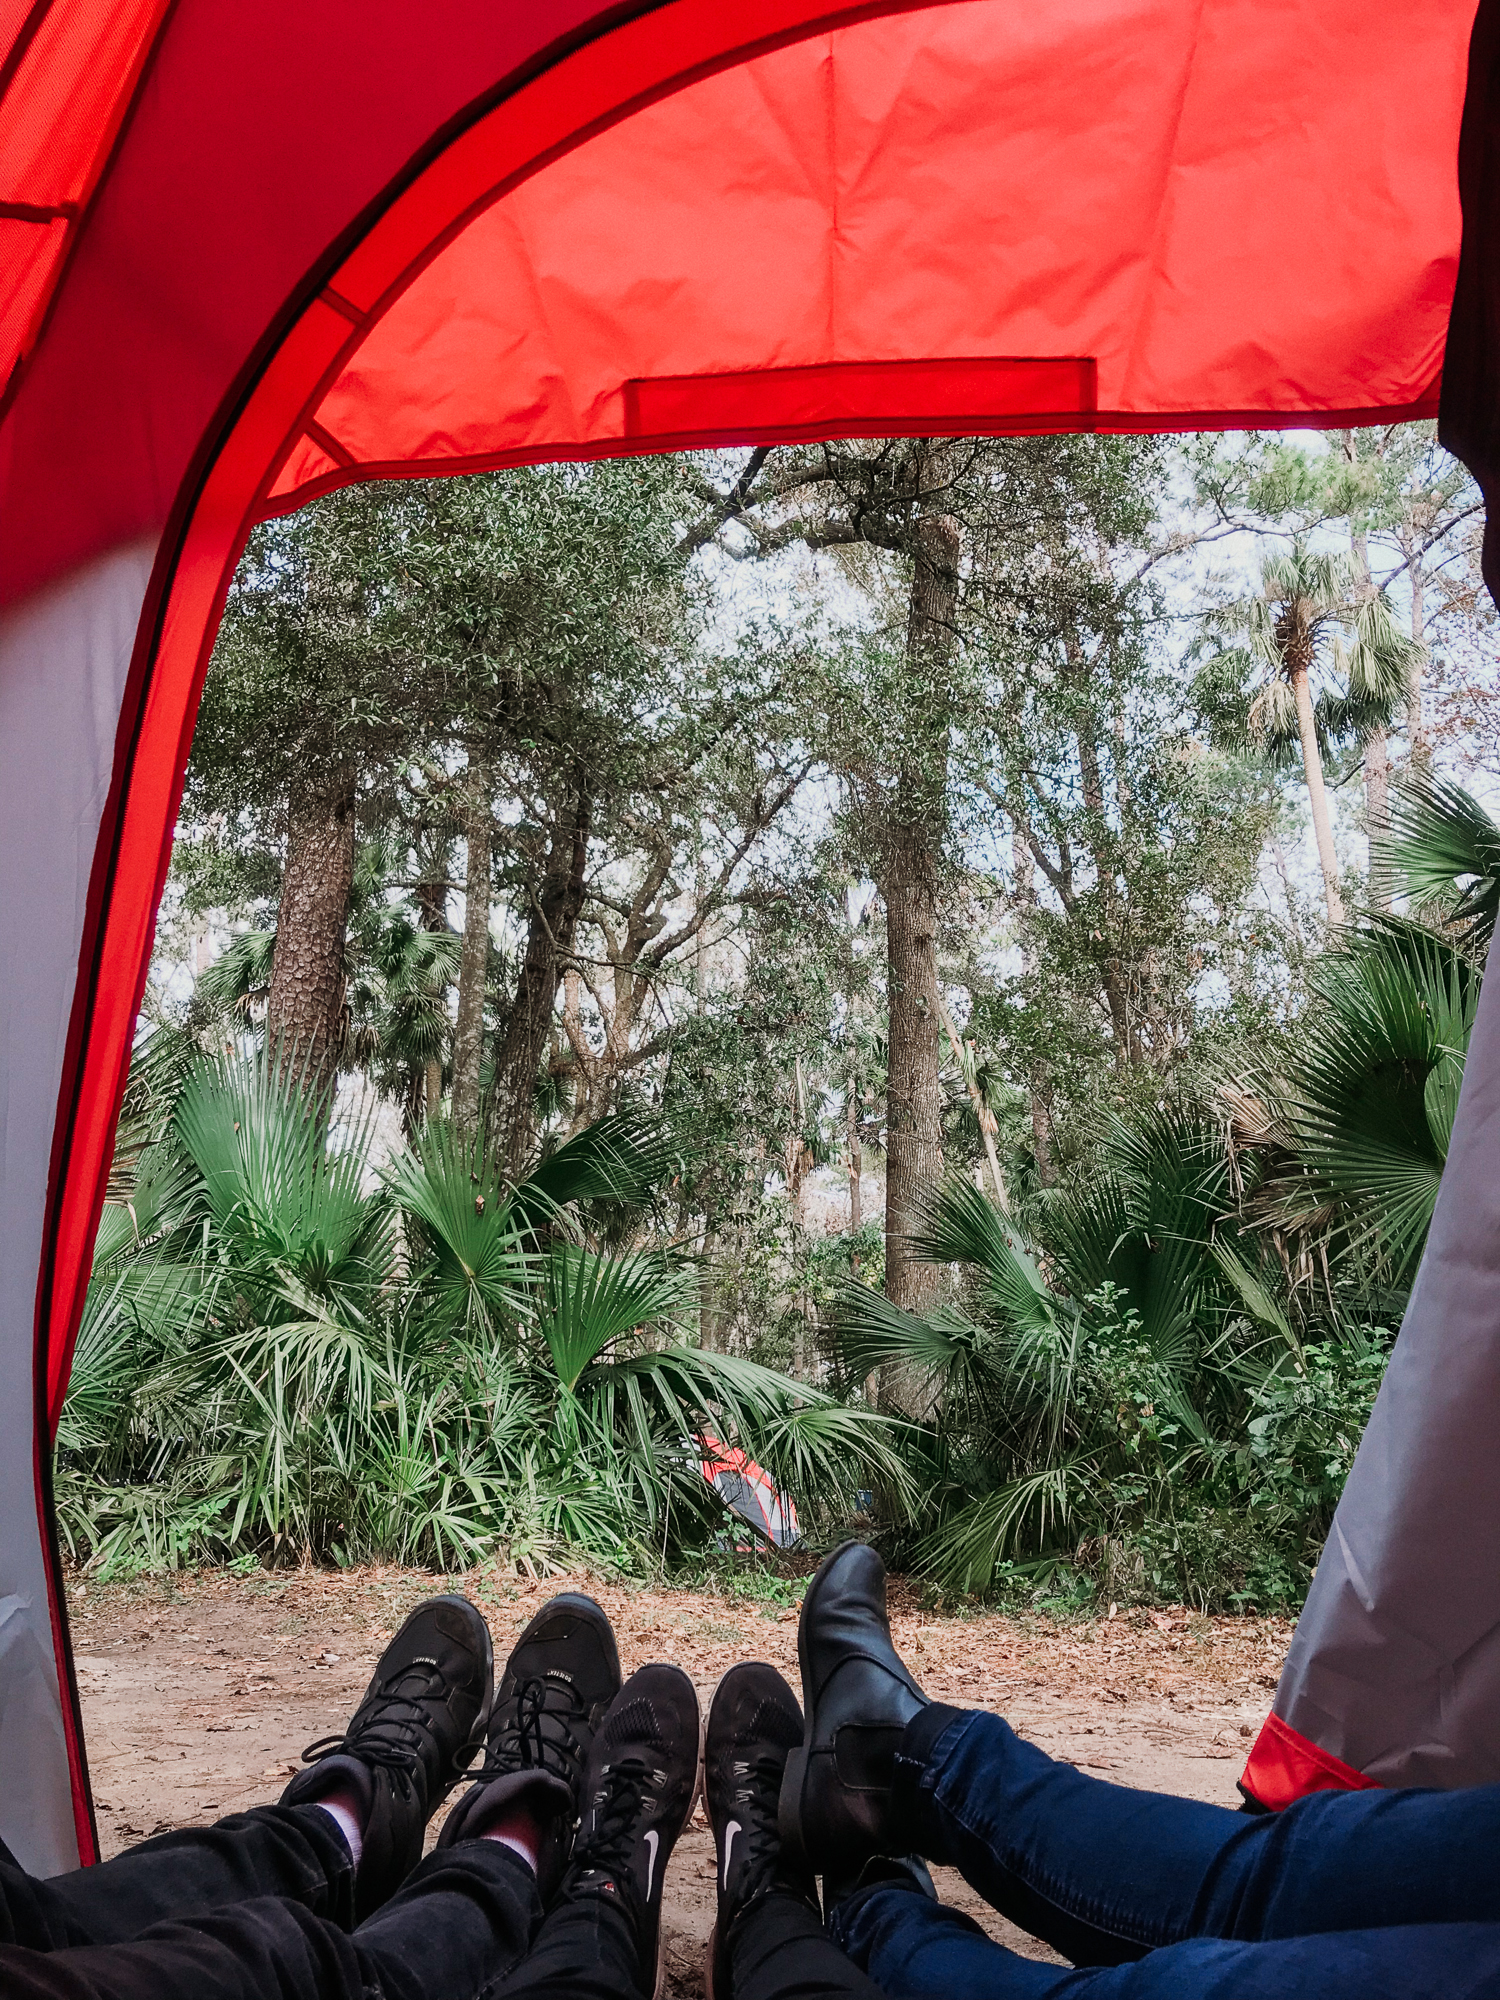 From-Coast-to-Coast-Camping-Juniper-Springs-ocala-national-forest-2-.jpg